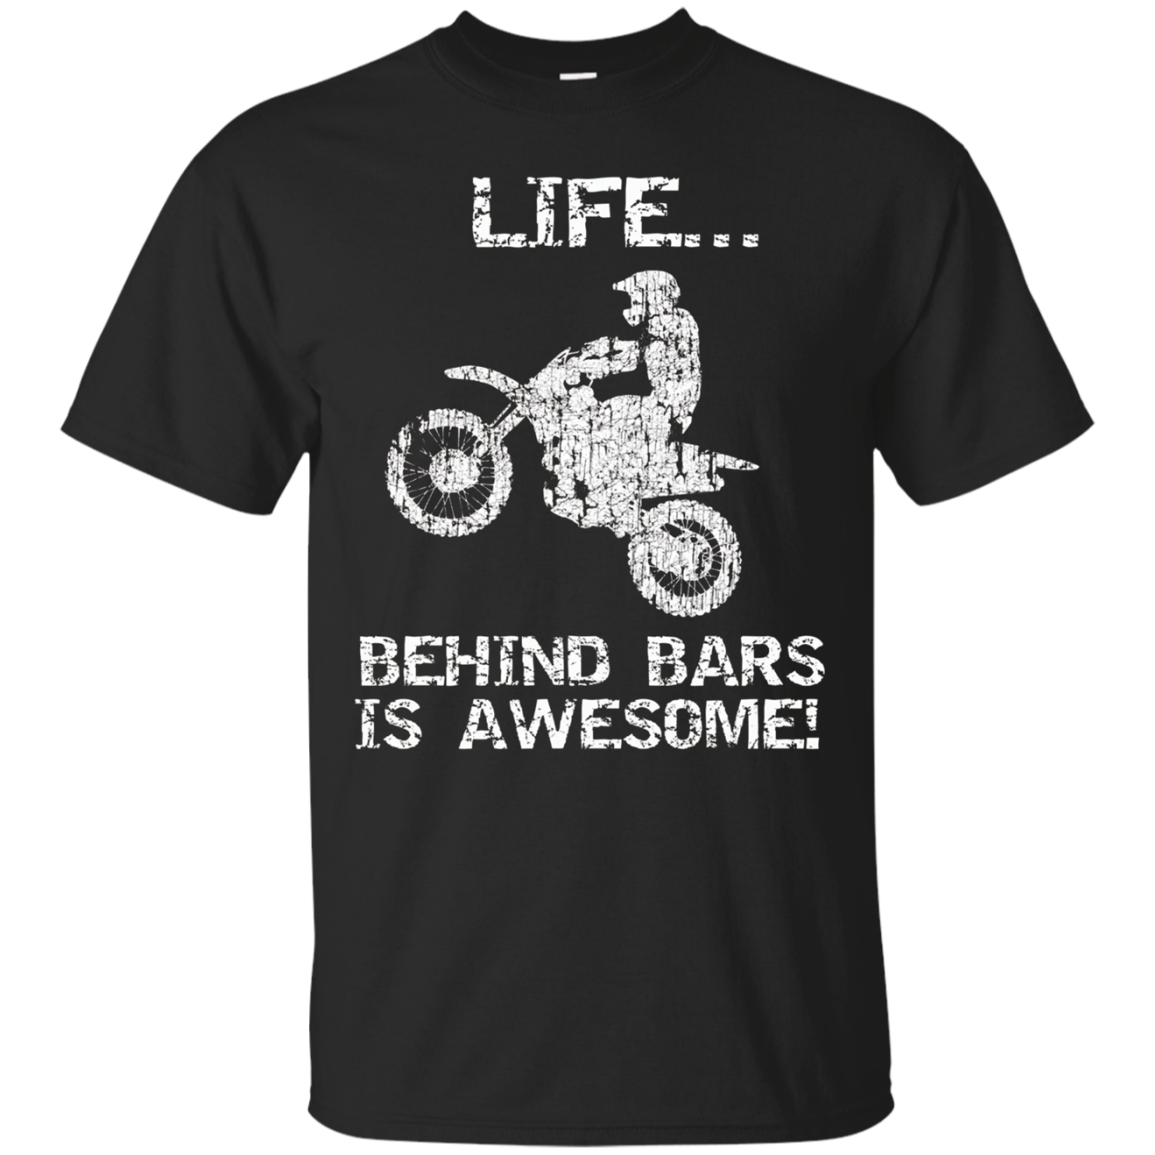 Funny Gift for Motorcycle Riders or Bikers T-Shirt